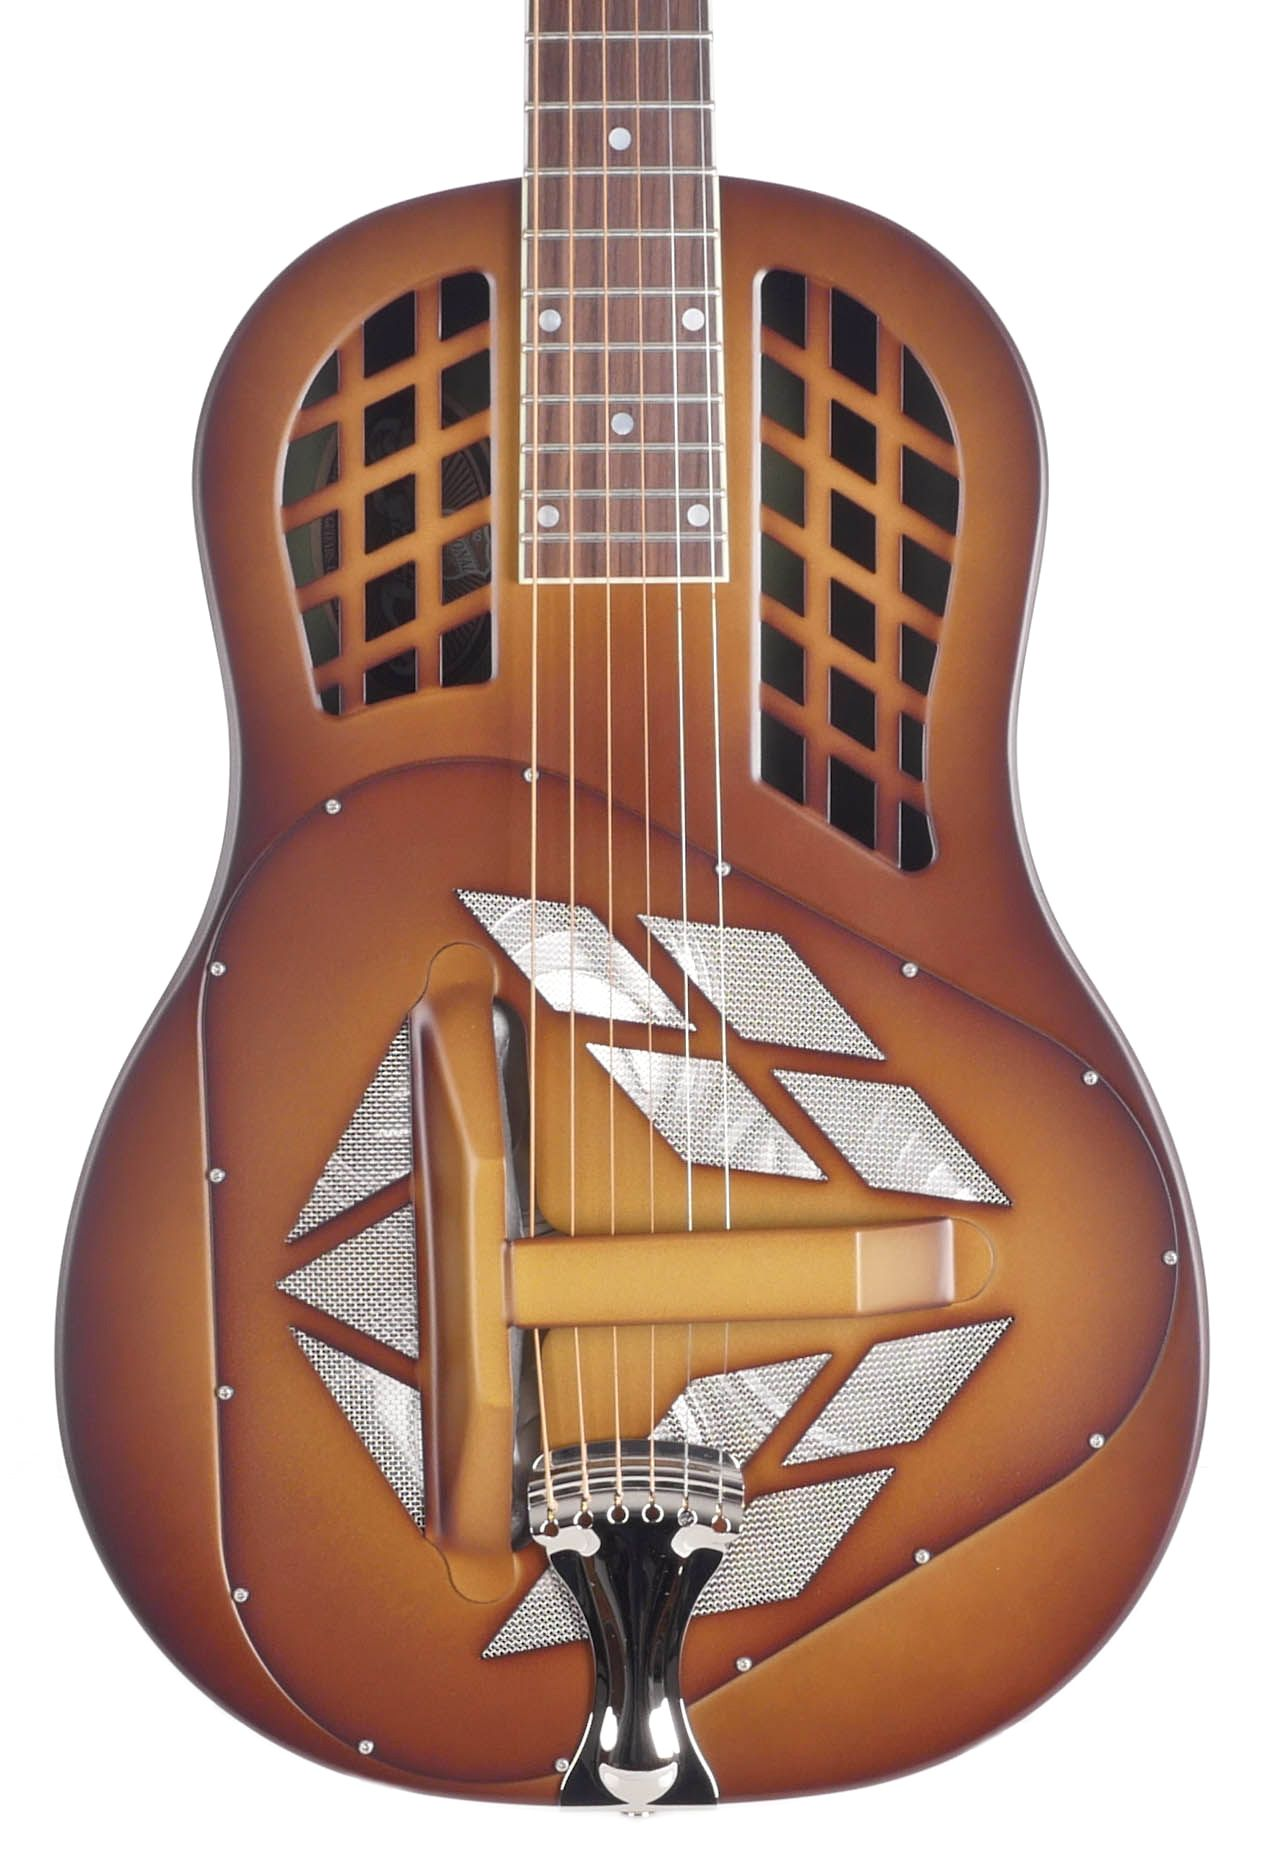 National Triolian Tricone Reso Phonic Guitar Guitar National Resonator Guitar